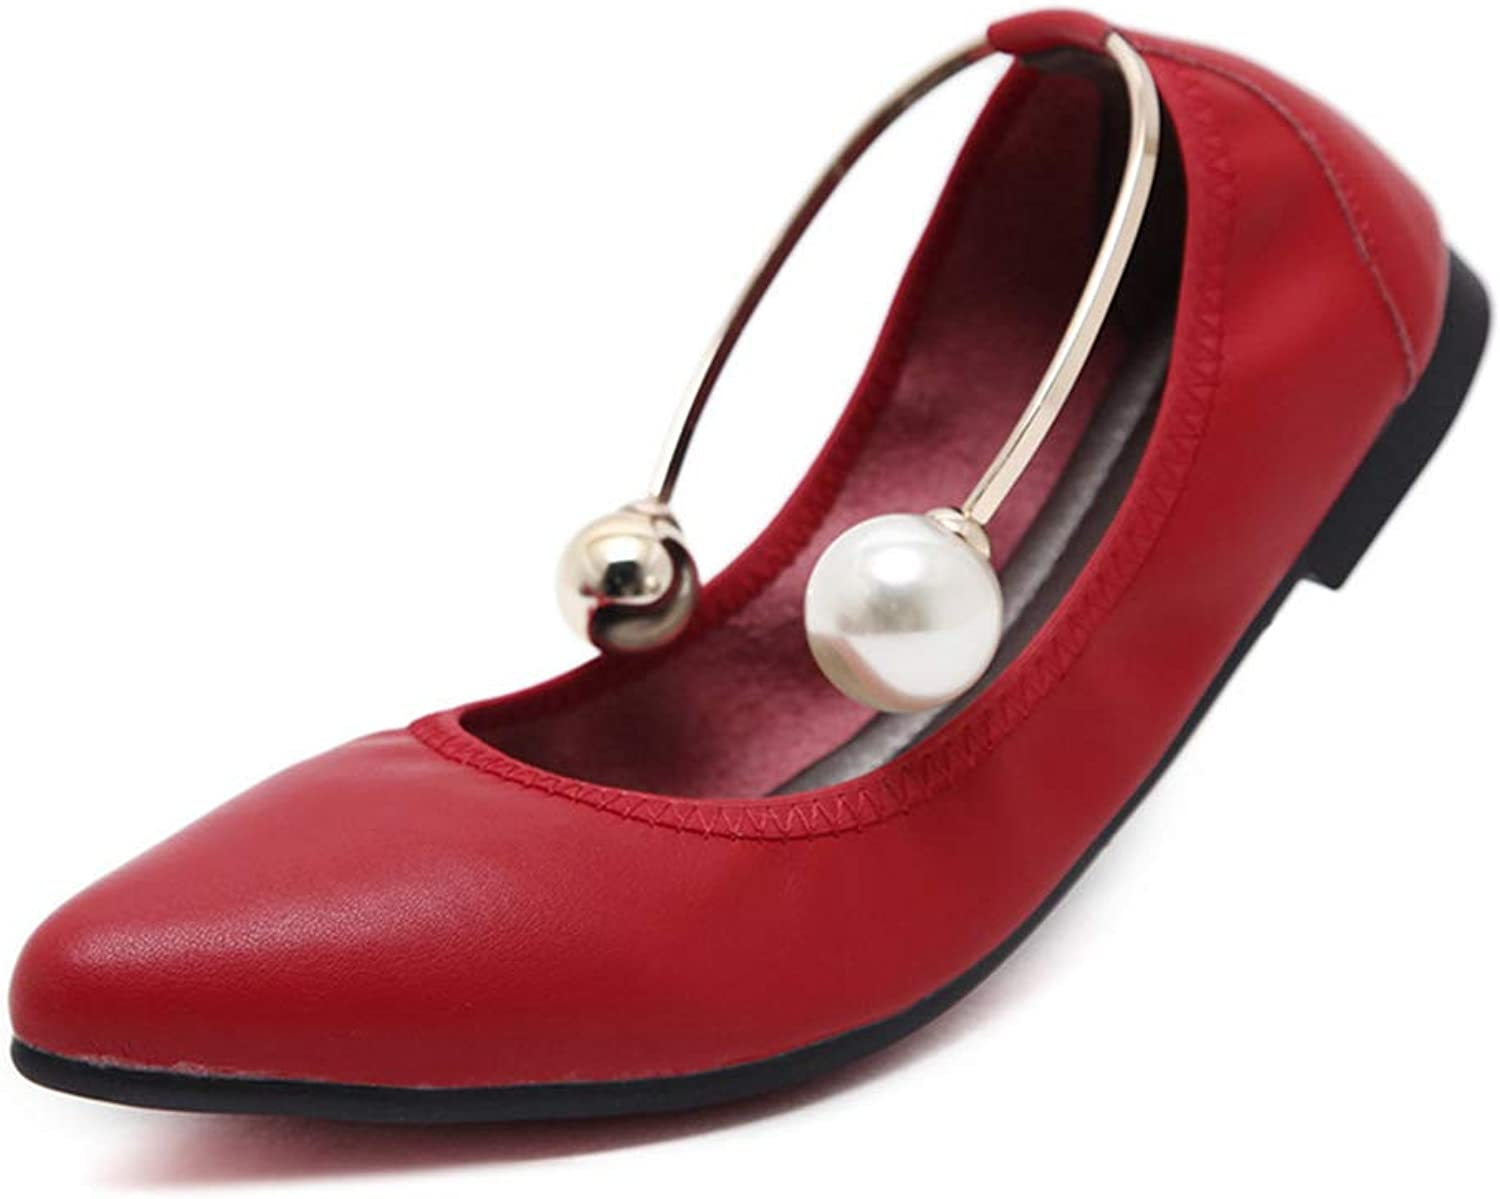 Women's Casual Soft Ballet Flats Breathable Walking shoes Stylish Pointy Head Slip-on Loafers